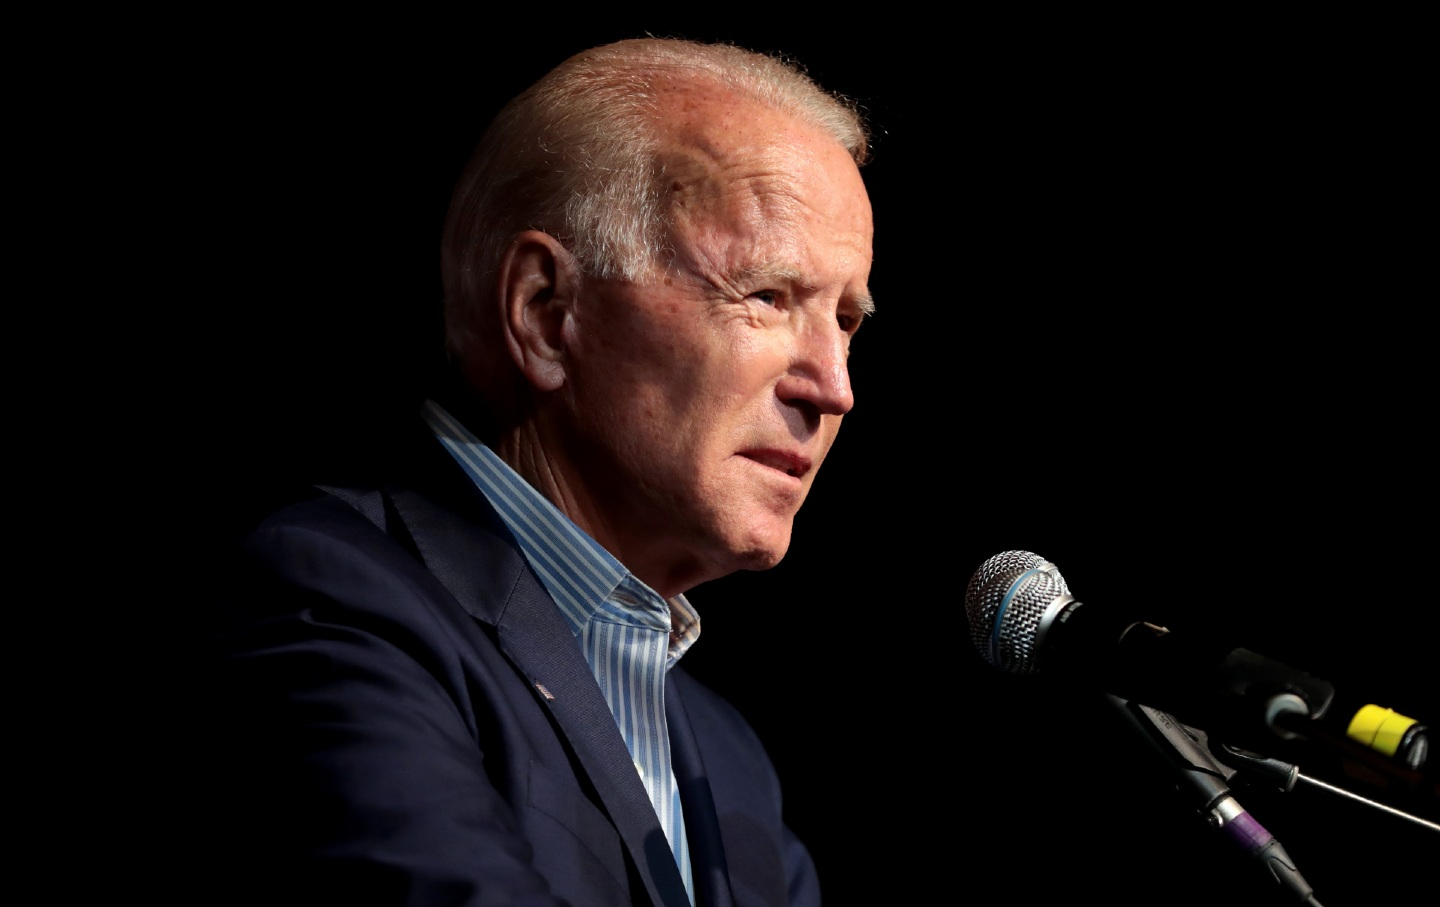 presidential candidate Biden at a campaign rally in Texas